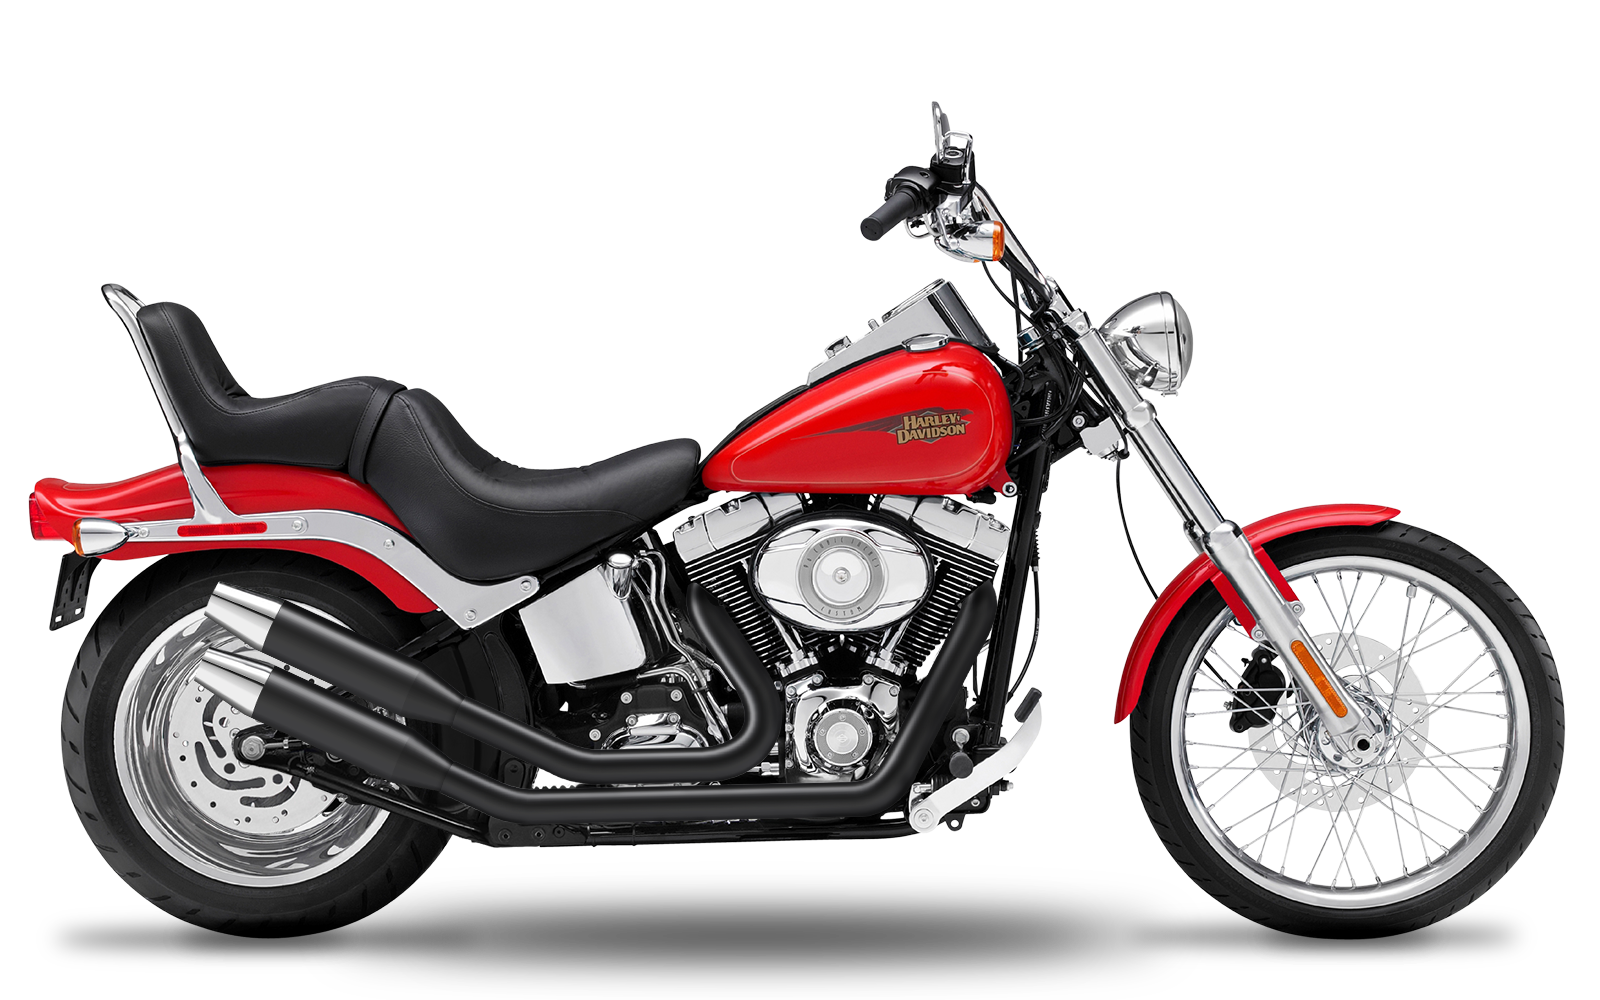 Softail - Springer - TC88 - 2000-2006 - Complete systems